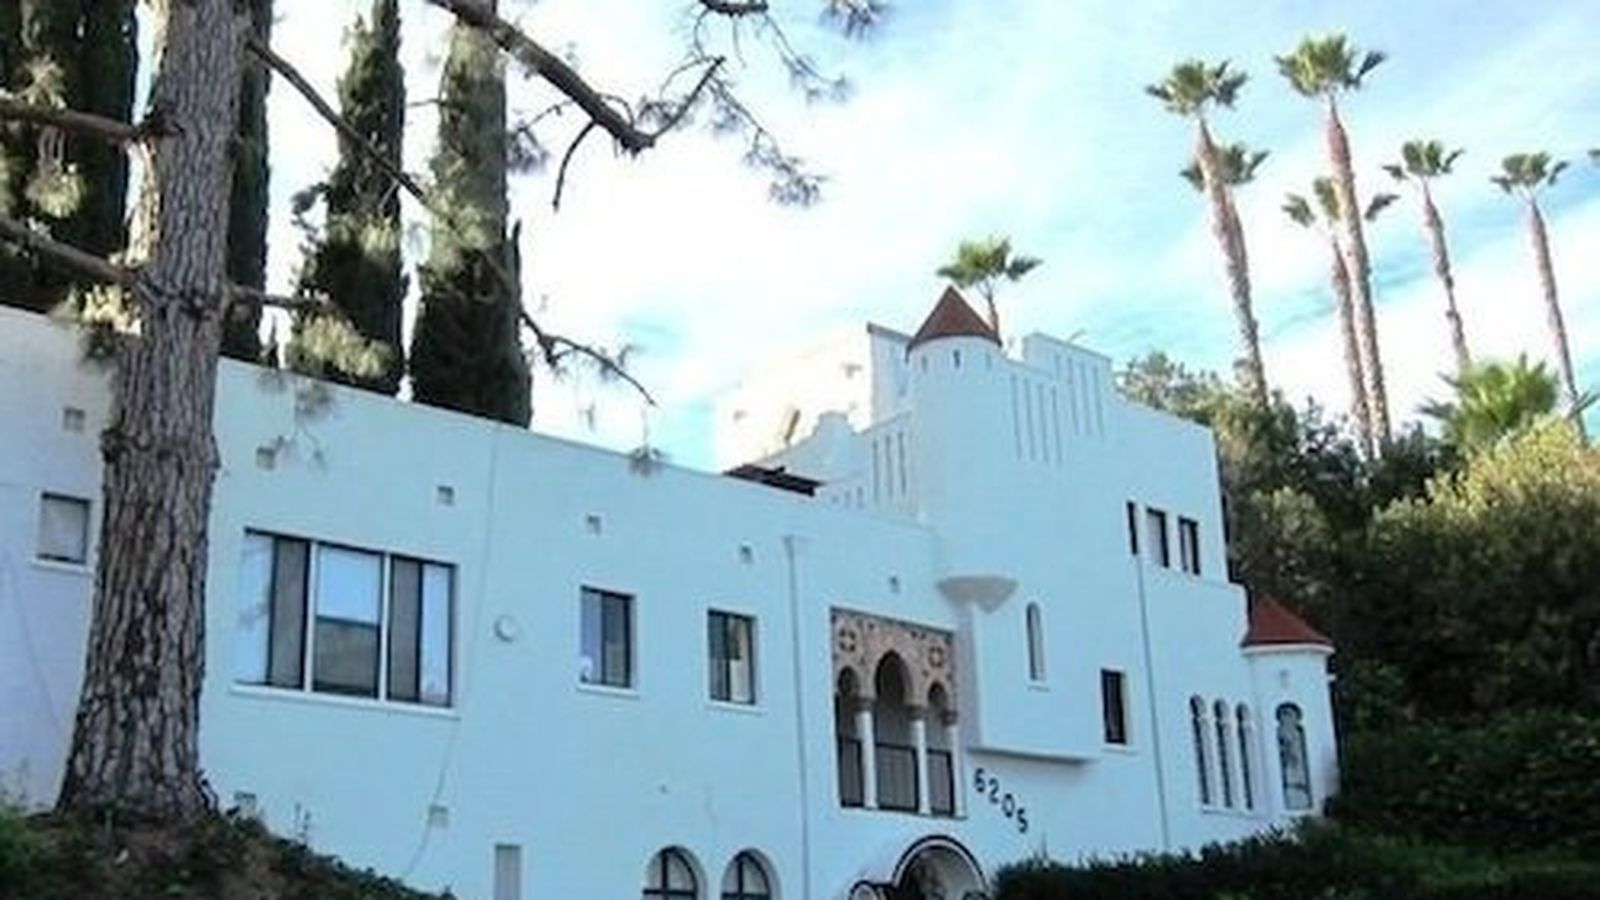 Today's Craigslist rummage turns up a notice of an availability in Beachwood Canyon's Krotona colony, where the mystical Theosophist Society attempted for a decade to build a utopia before...